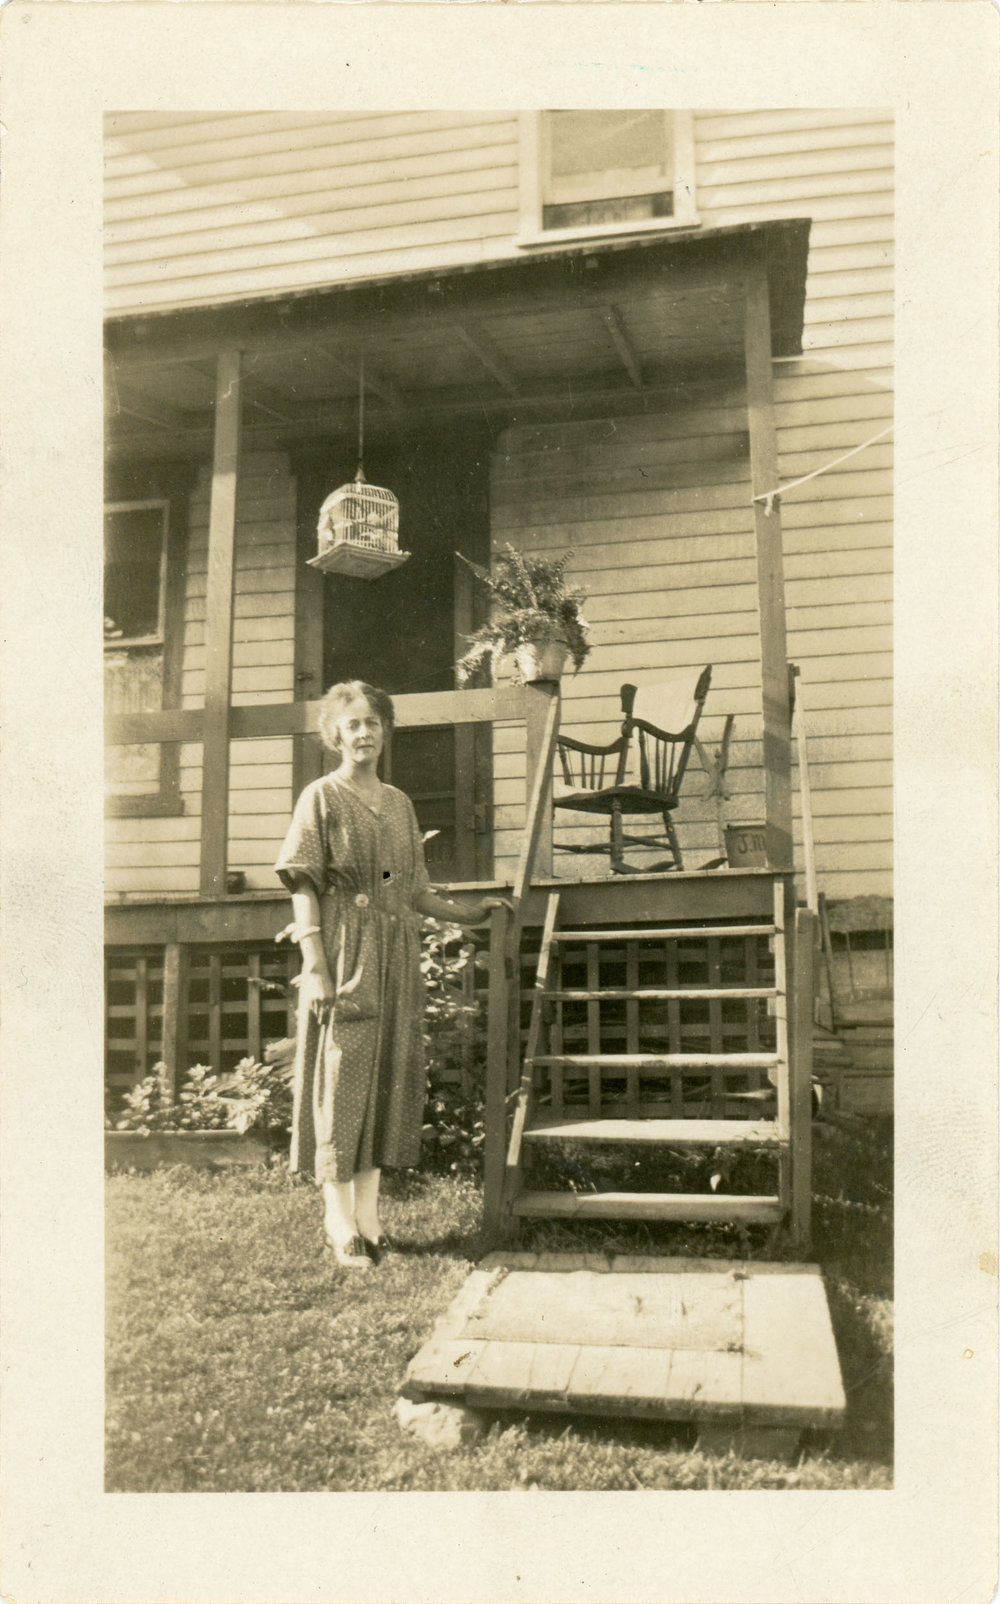 Found photo of woman standing next to a house